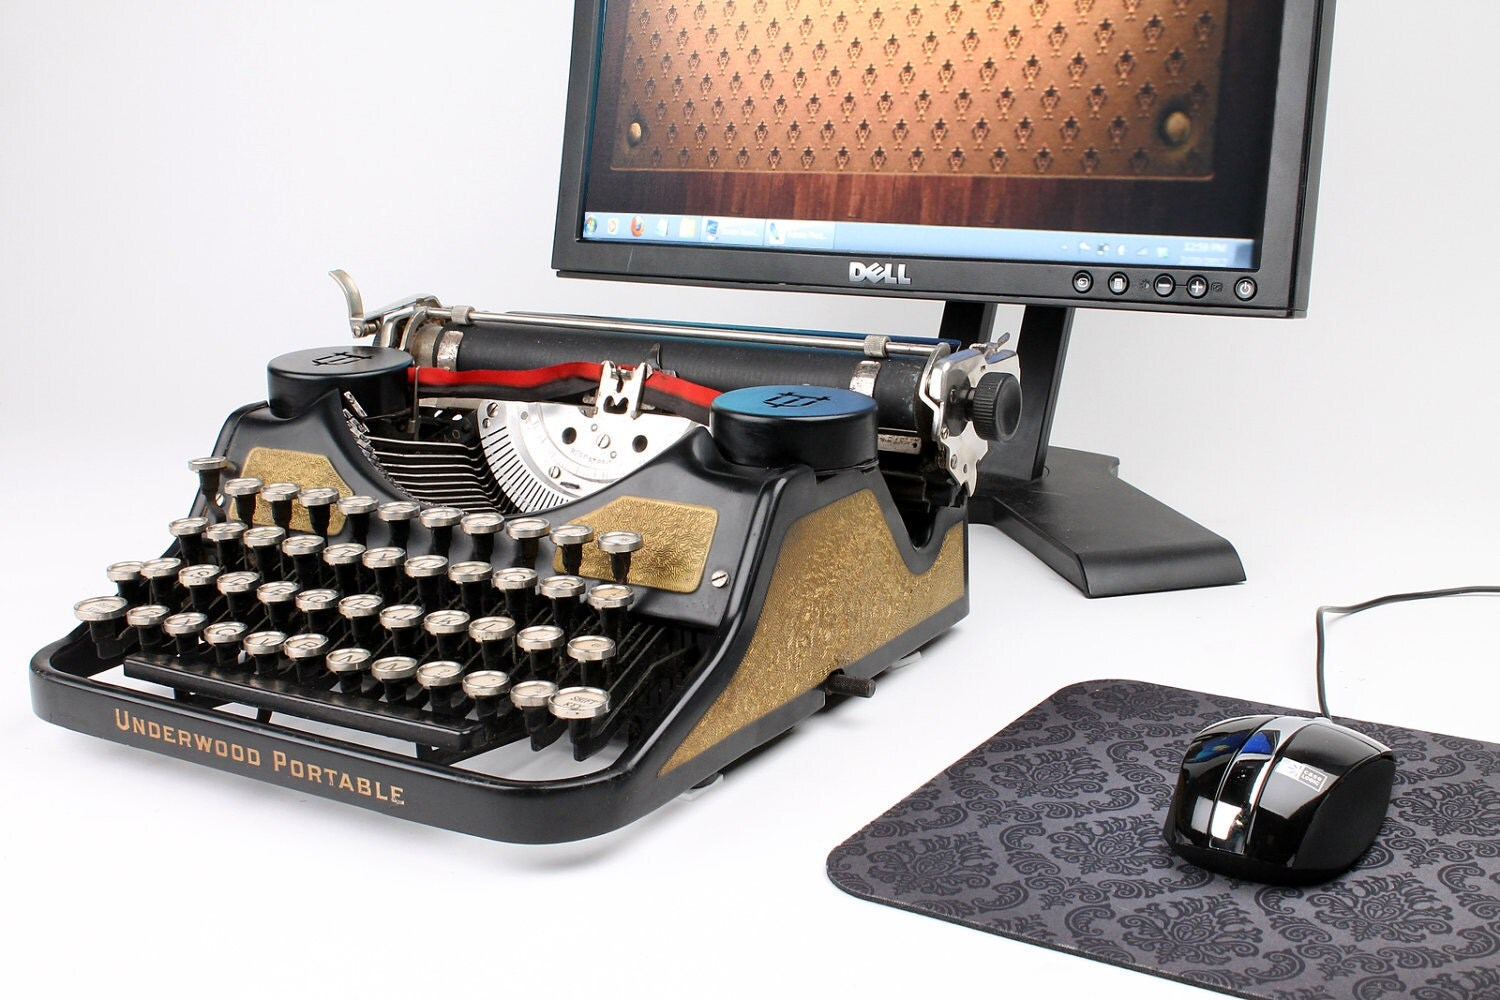 USB Typewriter Computer Keyboard and iPad Dock Gold Leaf | 1500 x 1000 jpeg 239kB